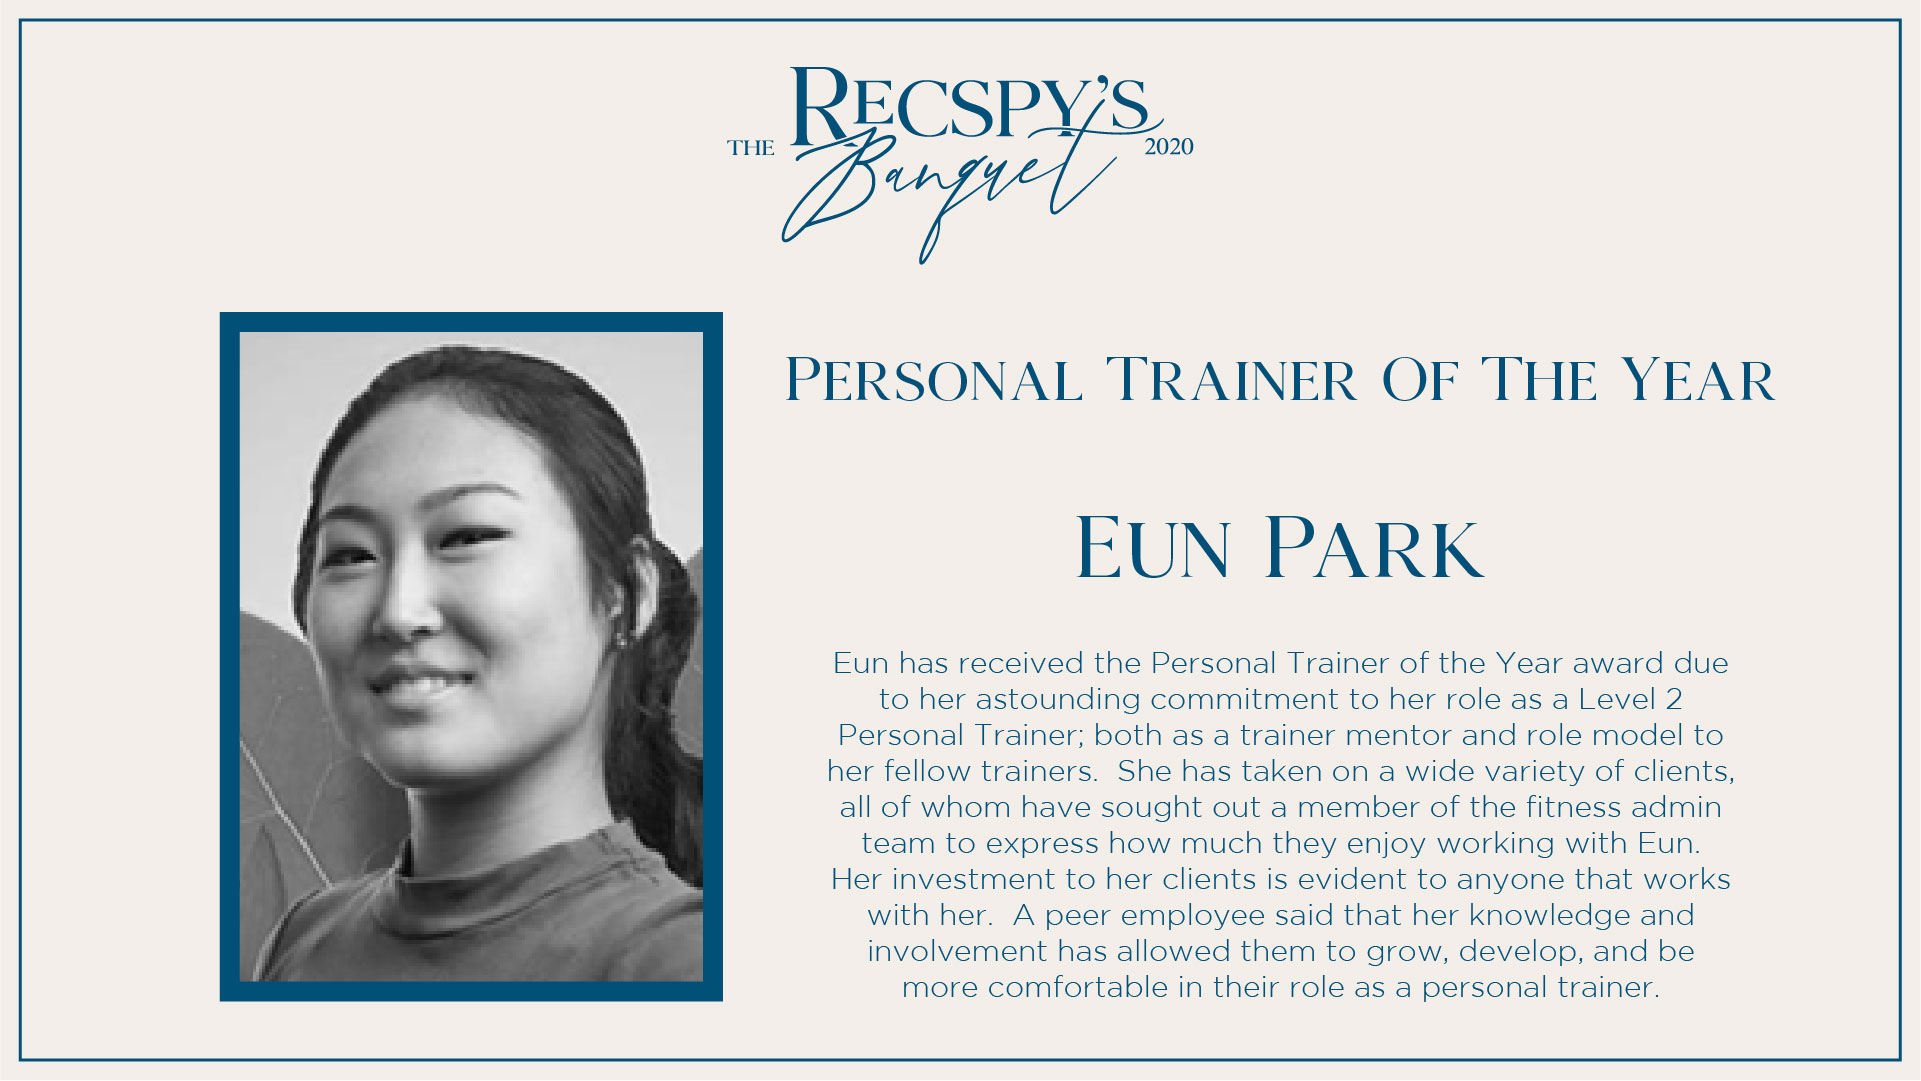 Eun Park: Personal Trainer of the Year